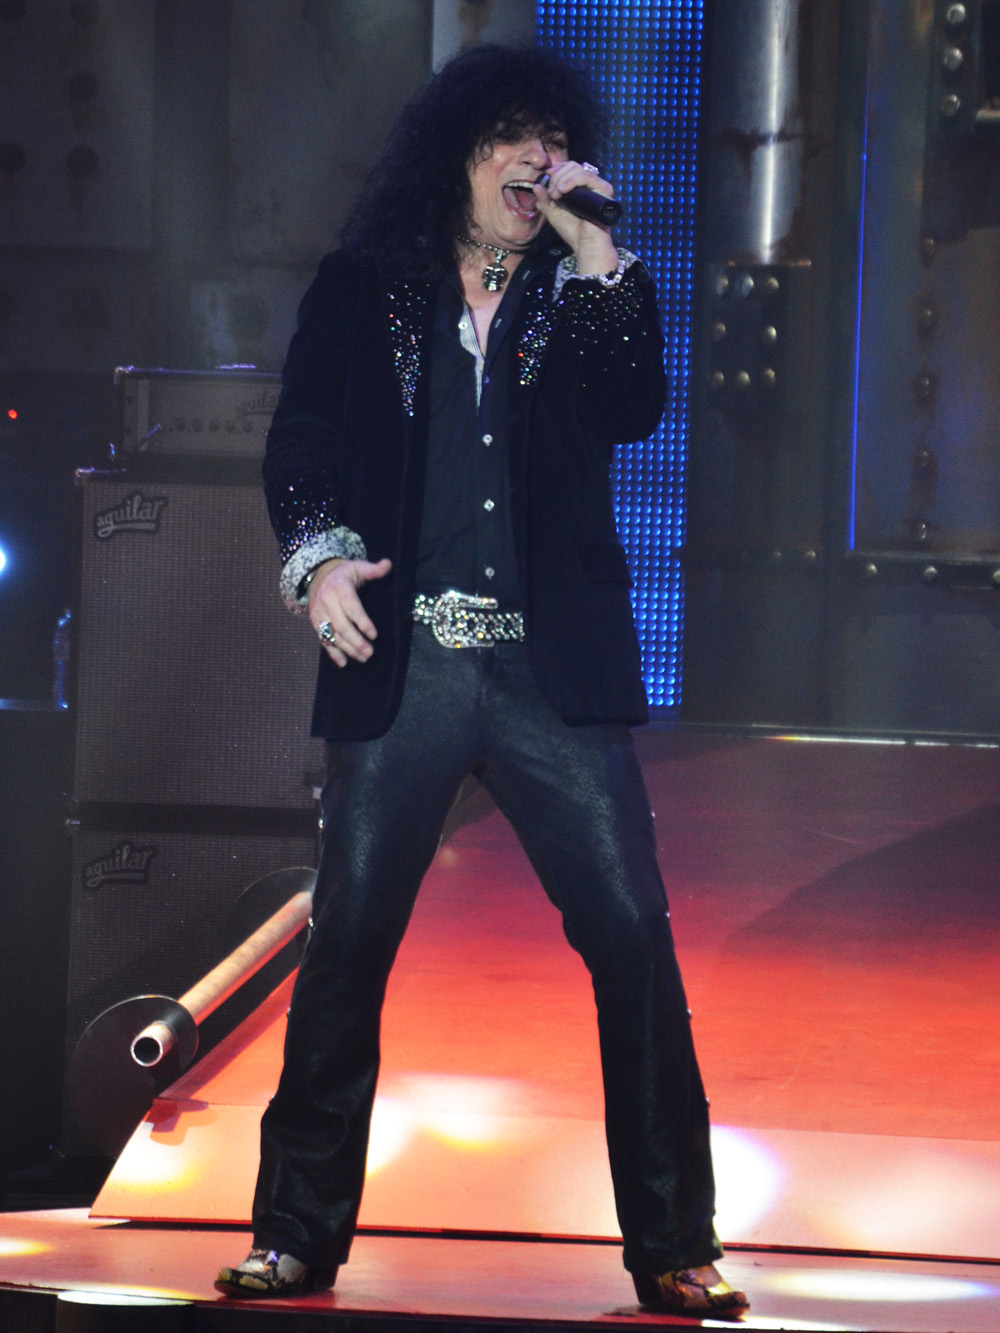 Paul Shortino Rock Vault Trop 62563